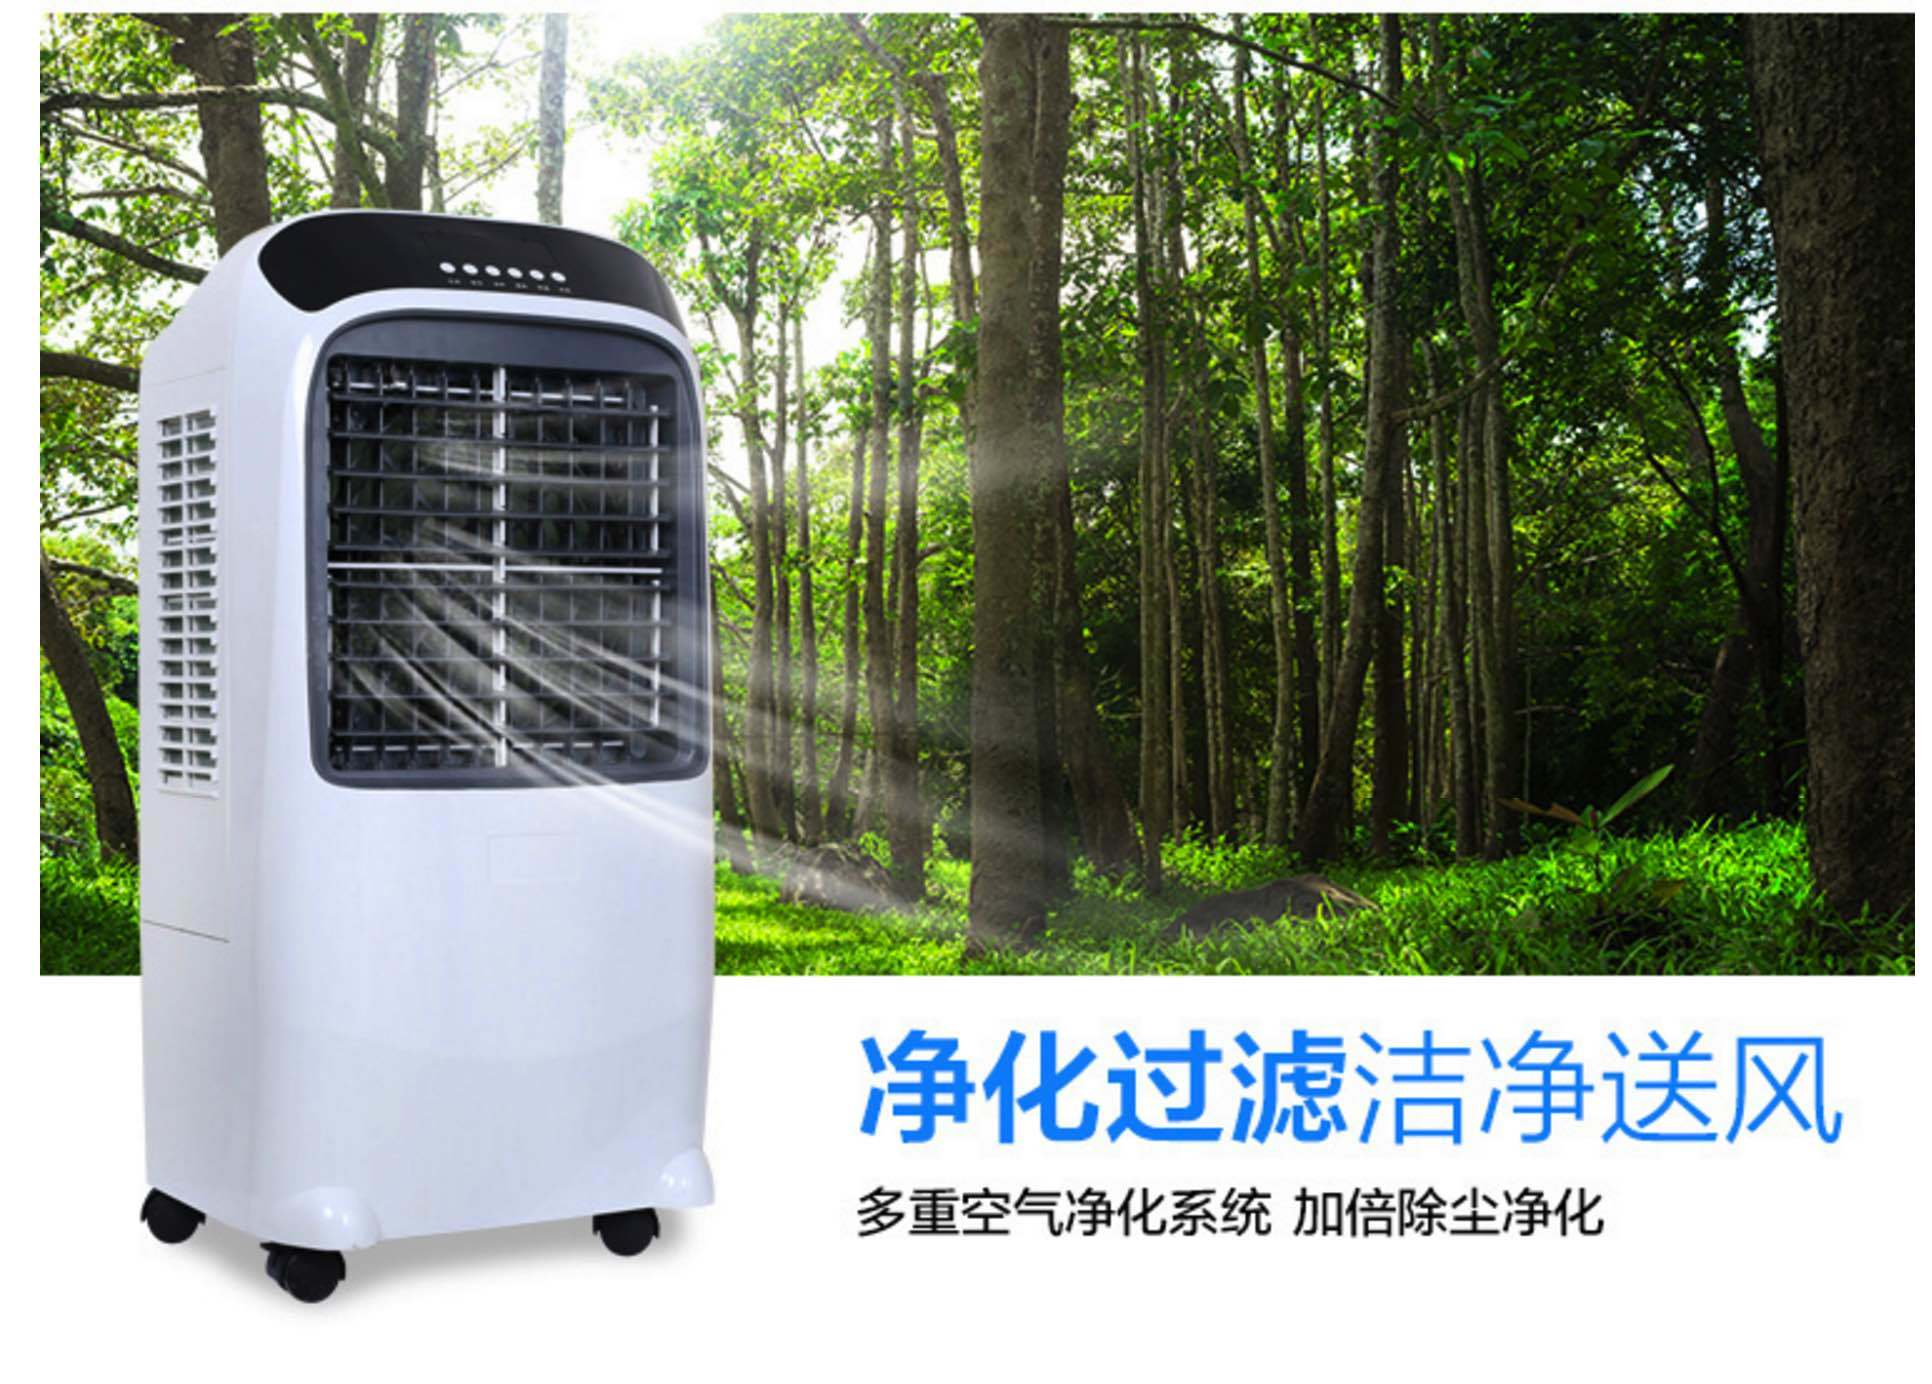 Portable Evaporative Air Cooler with Ionizer